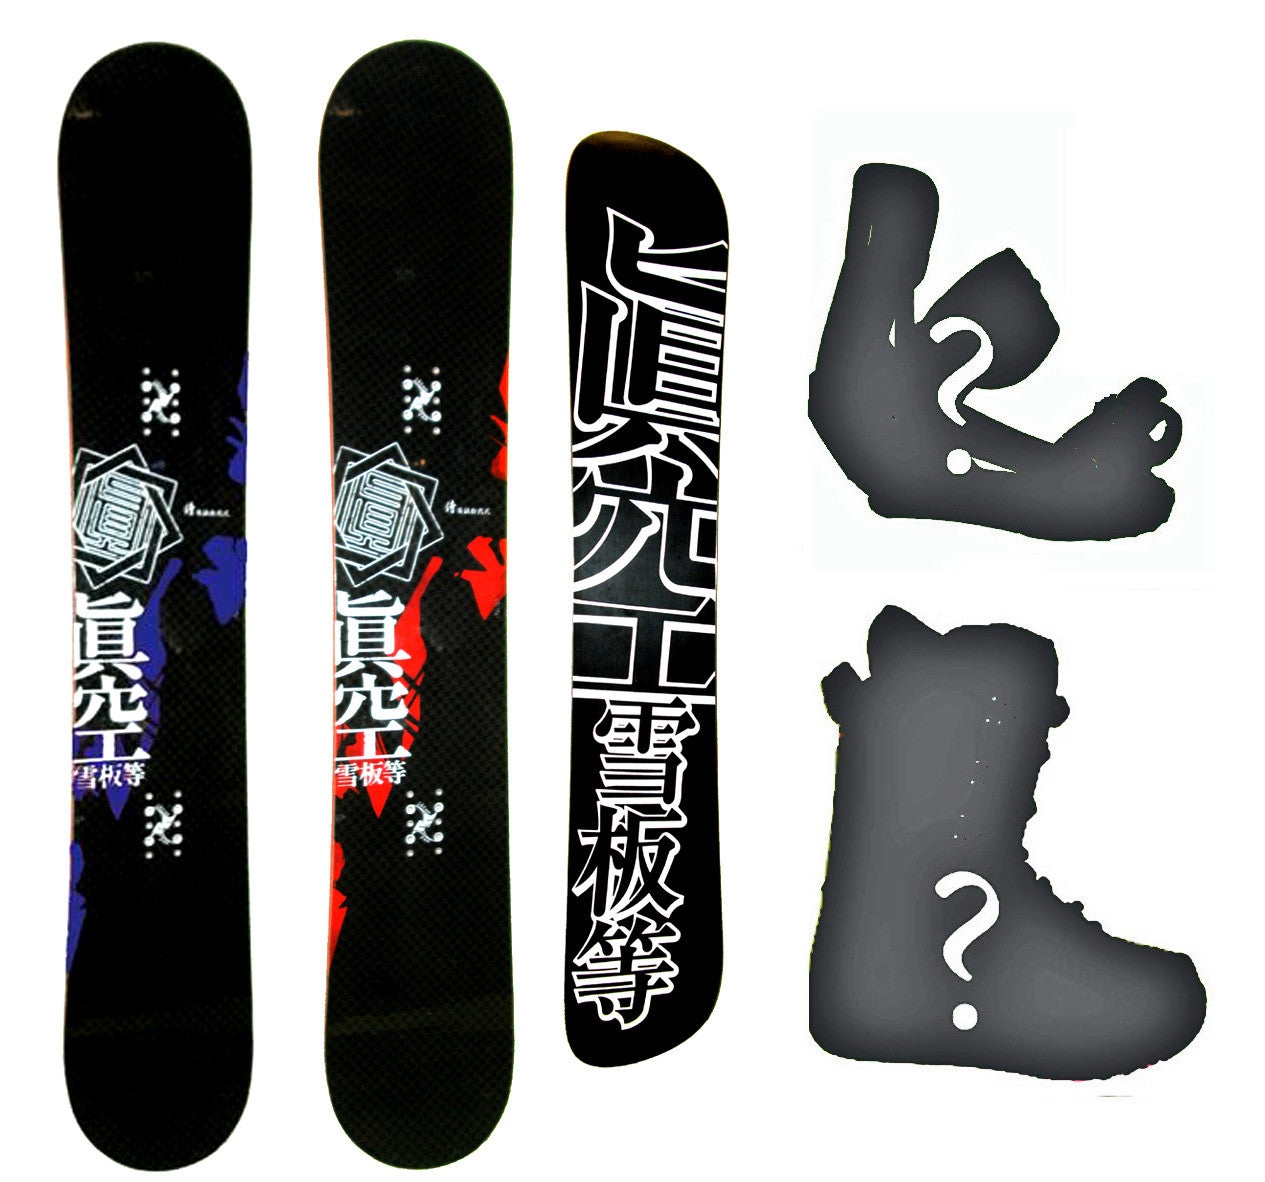 150-154cm Makuw Seppan Katuro slayer  Snowboard, Build a Package with Boots and Bindings